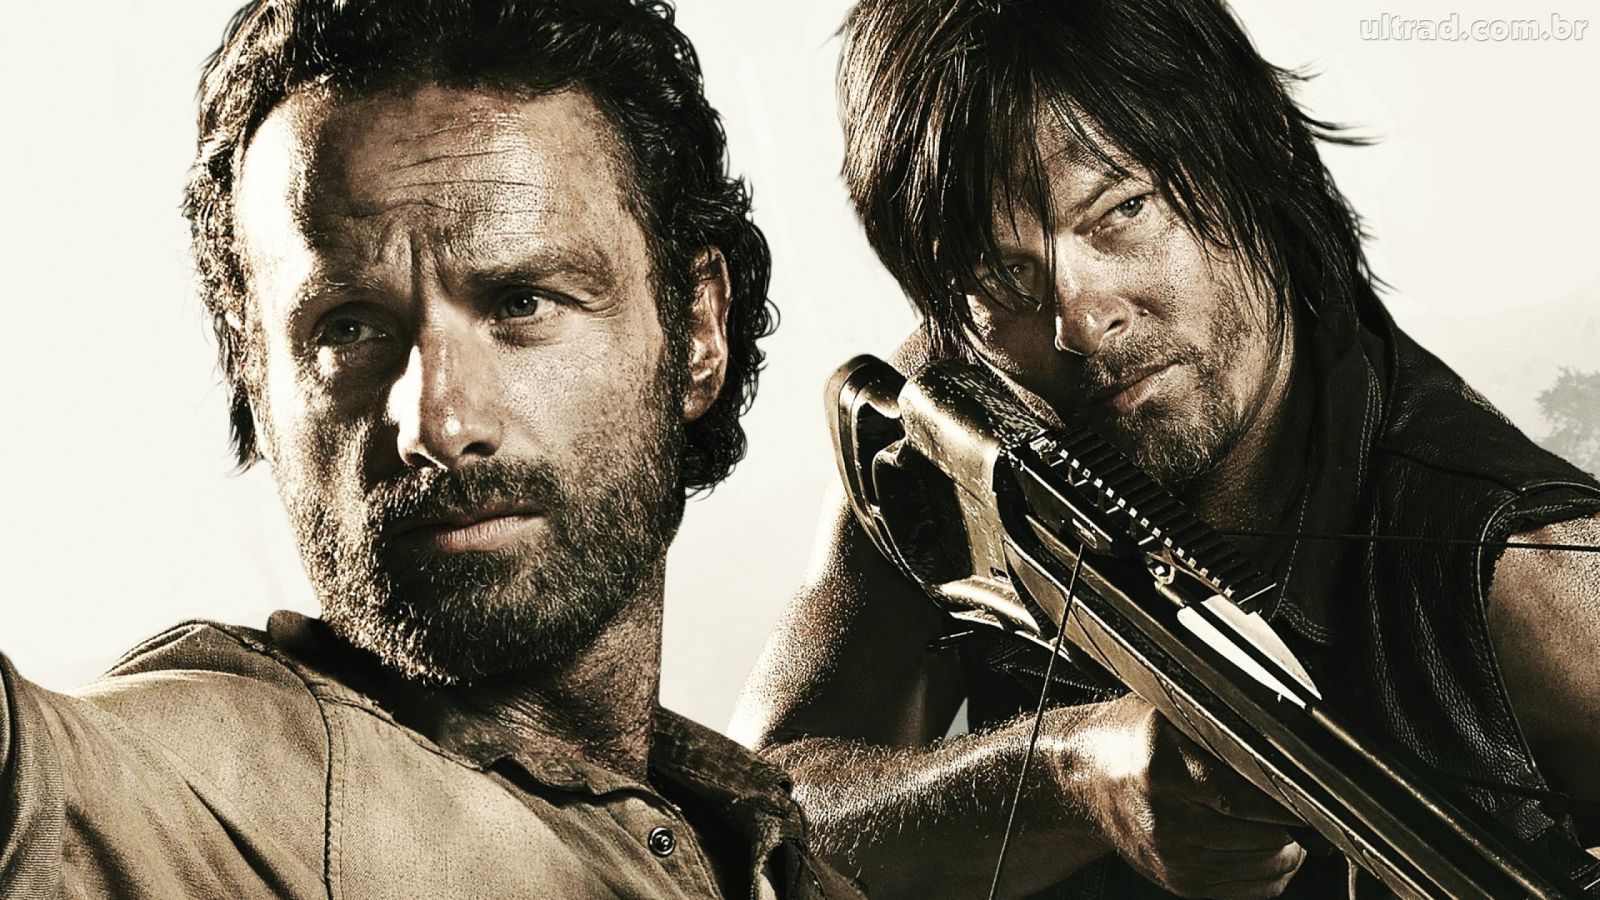 Rick Grimes and  Daryl Dixon - The Walking Dead